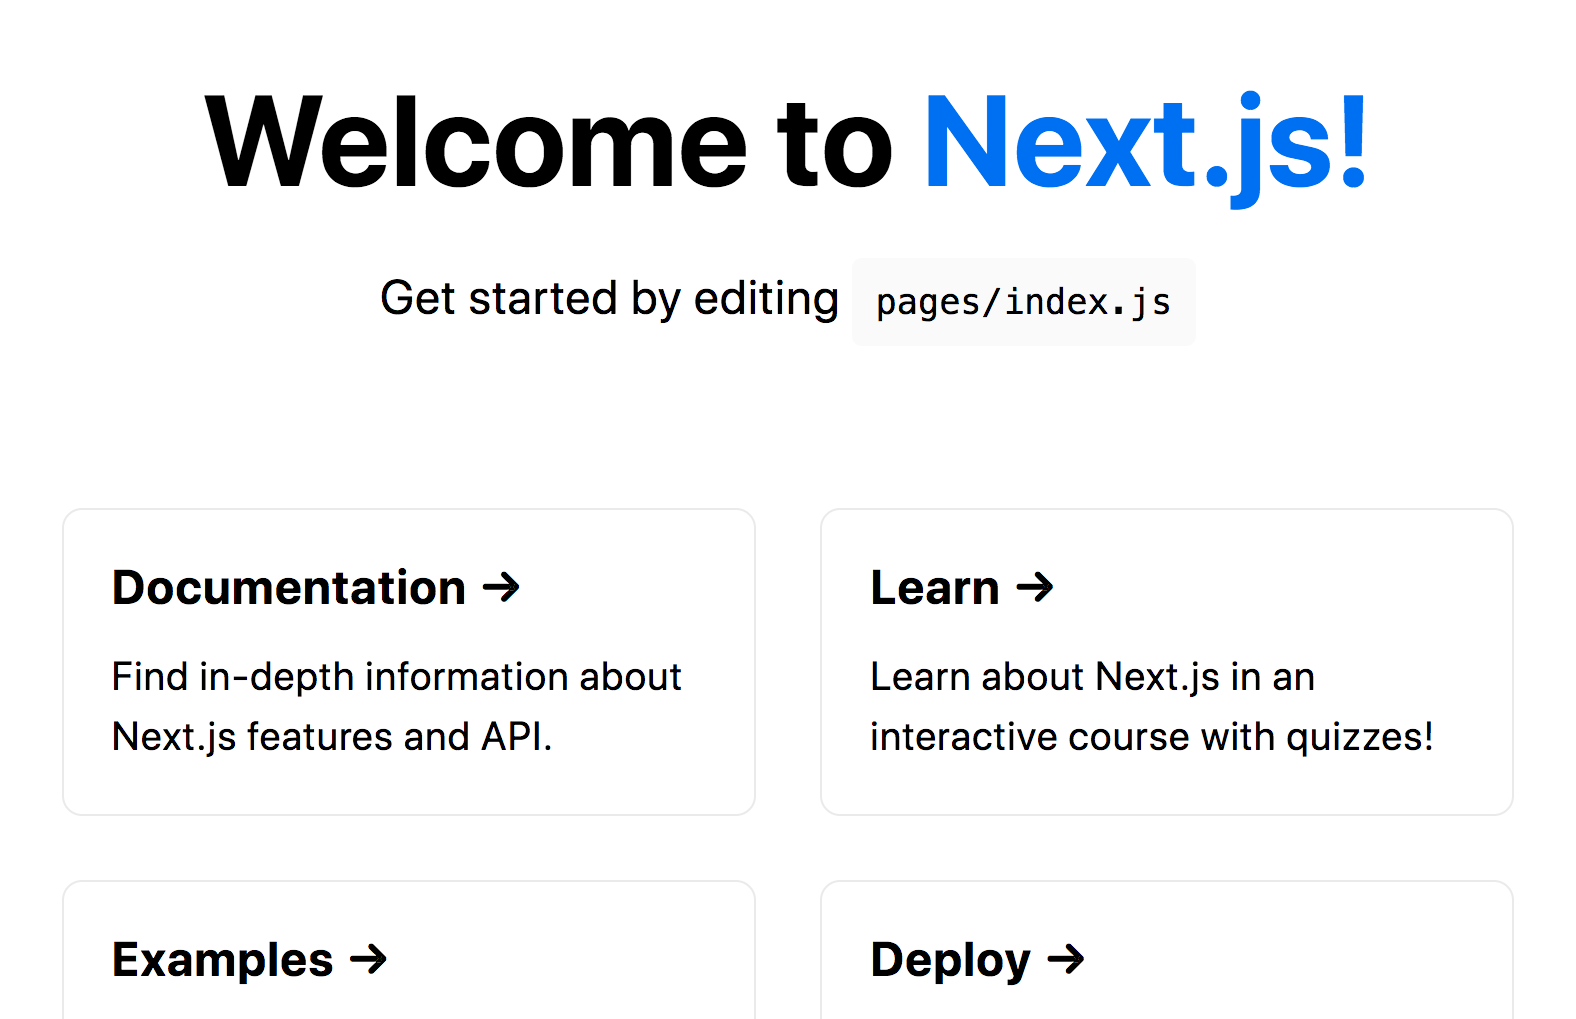 1_welcome-to-nextjs.png